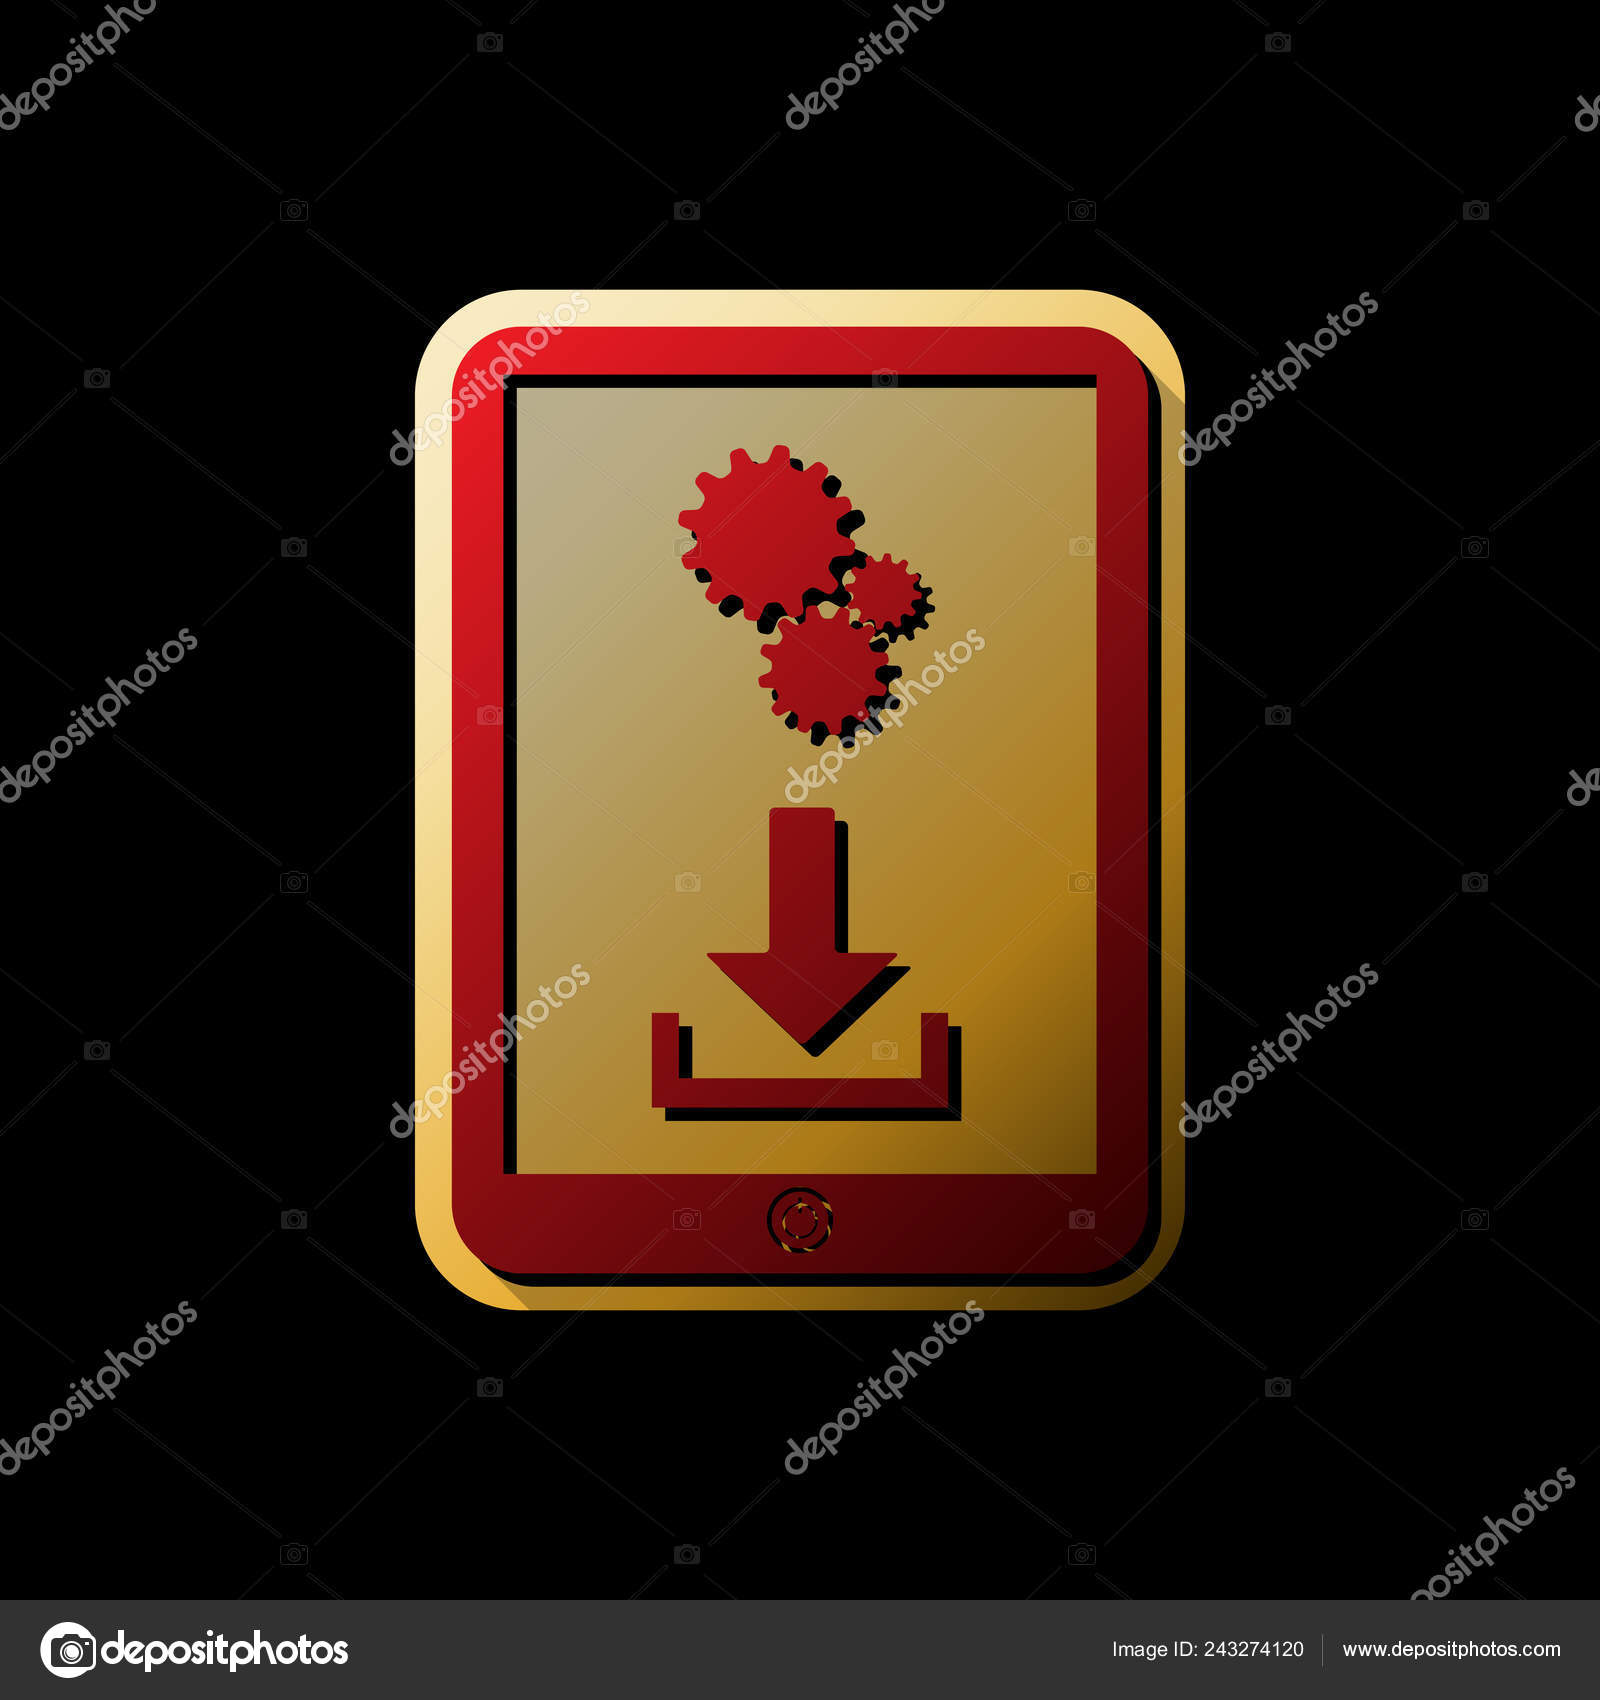 Phone Icon Settings Symbol Vector Red Icon Small Black Limitless Stock Vector C Asmati1702 Gmail Com 243274120